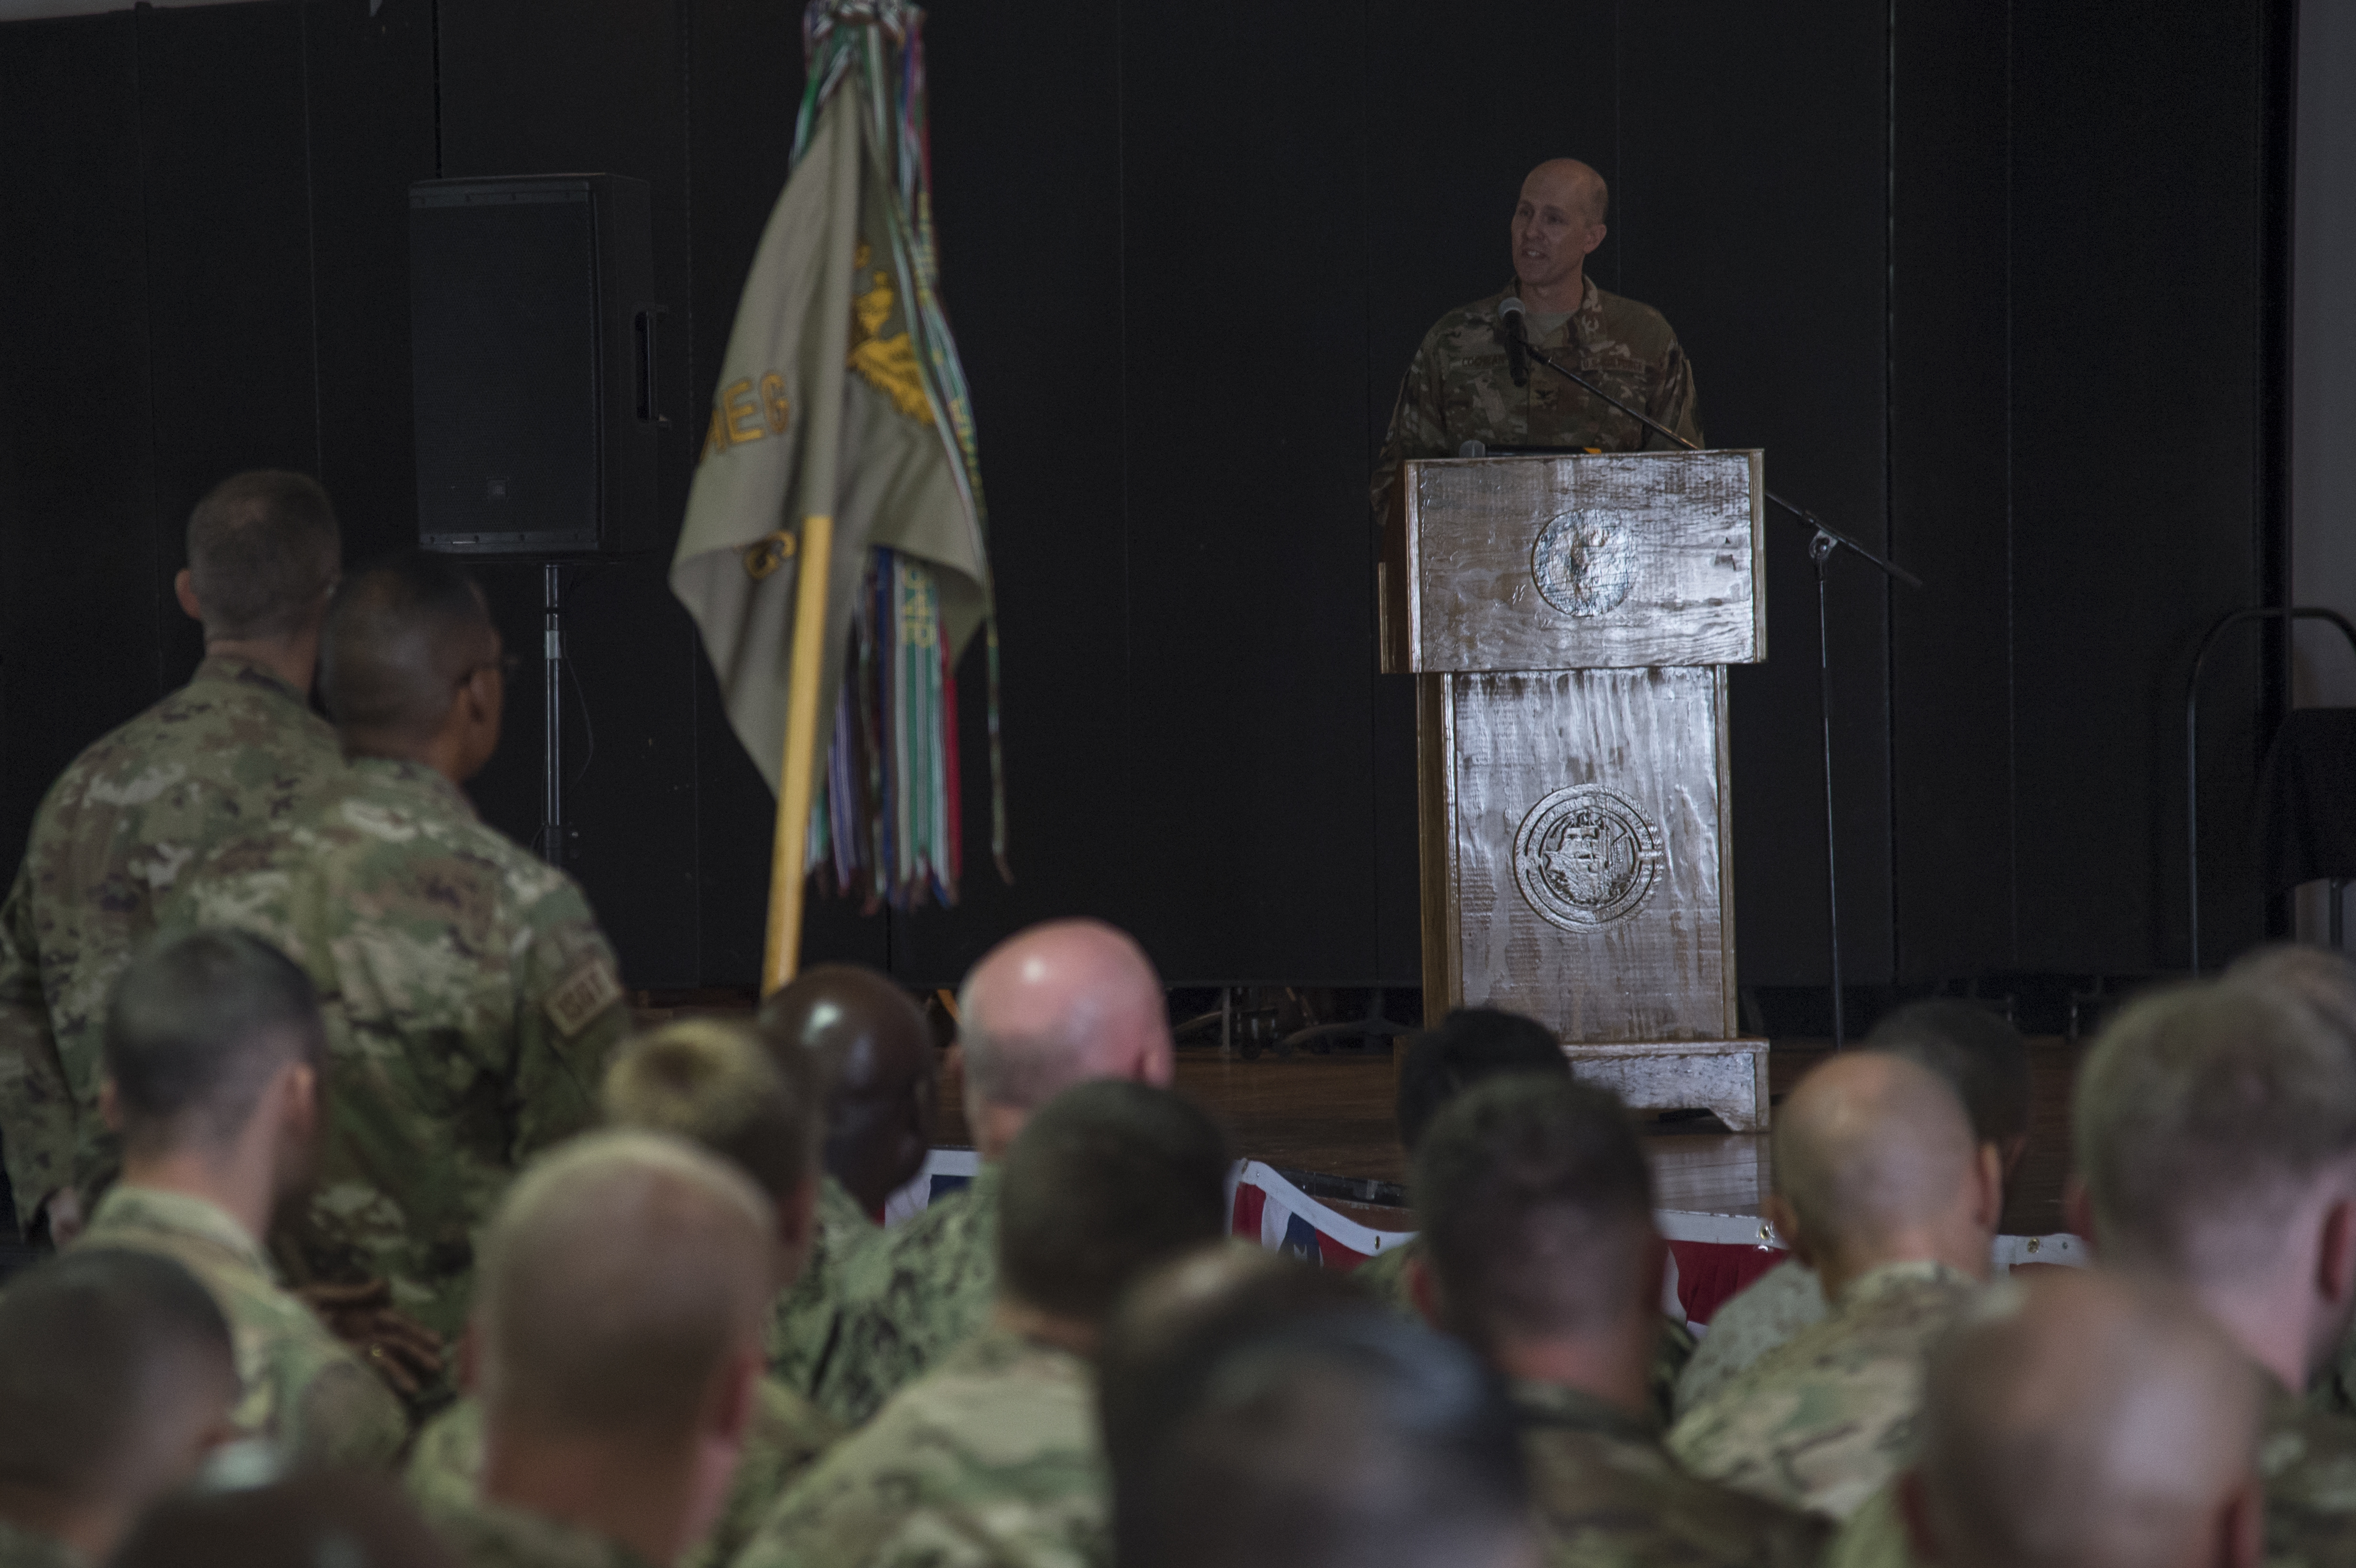 U.S. Air Force Col. Shawn Cochran, 449th Air Expeditionary Group incoming commander, speaks to the crowd during the 449th AEG Change of Command ceremony June 9, 2017, at Camp Lemonnier, Djibouti. Cochran is relieving U.S. Air Force Col. Michael Bruzzini who has served as the 449th AEG Commander since June 6, 2016. The passing of the flag is a military tradition signifying the change of authority and responsibility of a unit from one commander to another. (U.S. Air National Guard Photo by Tech. Sgt. Joe Harwood)